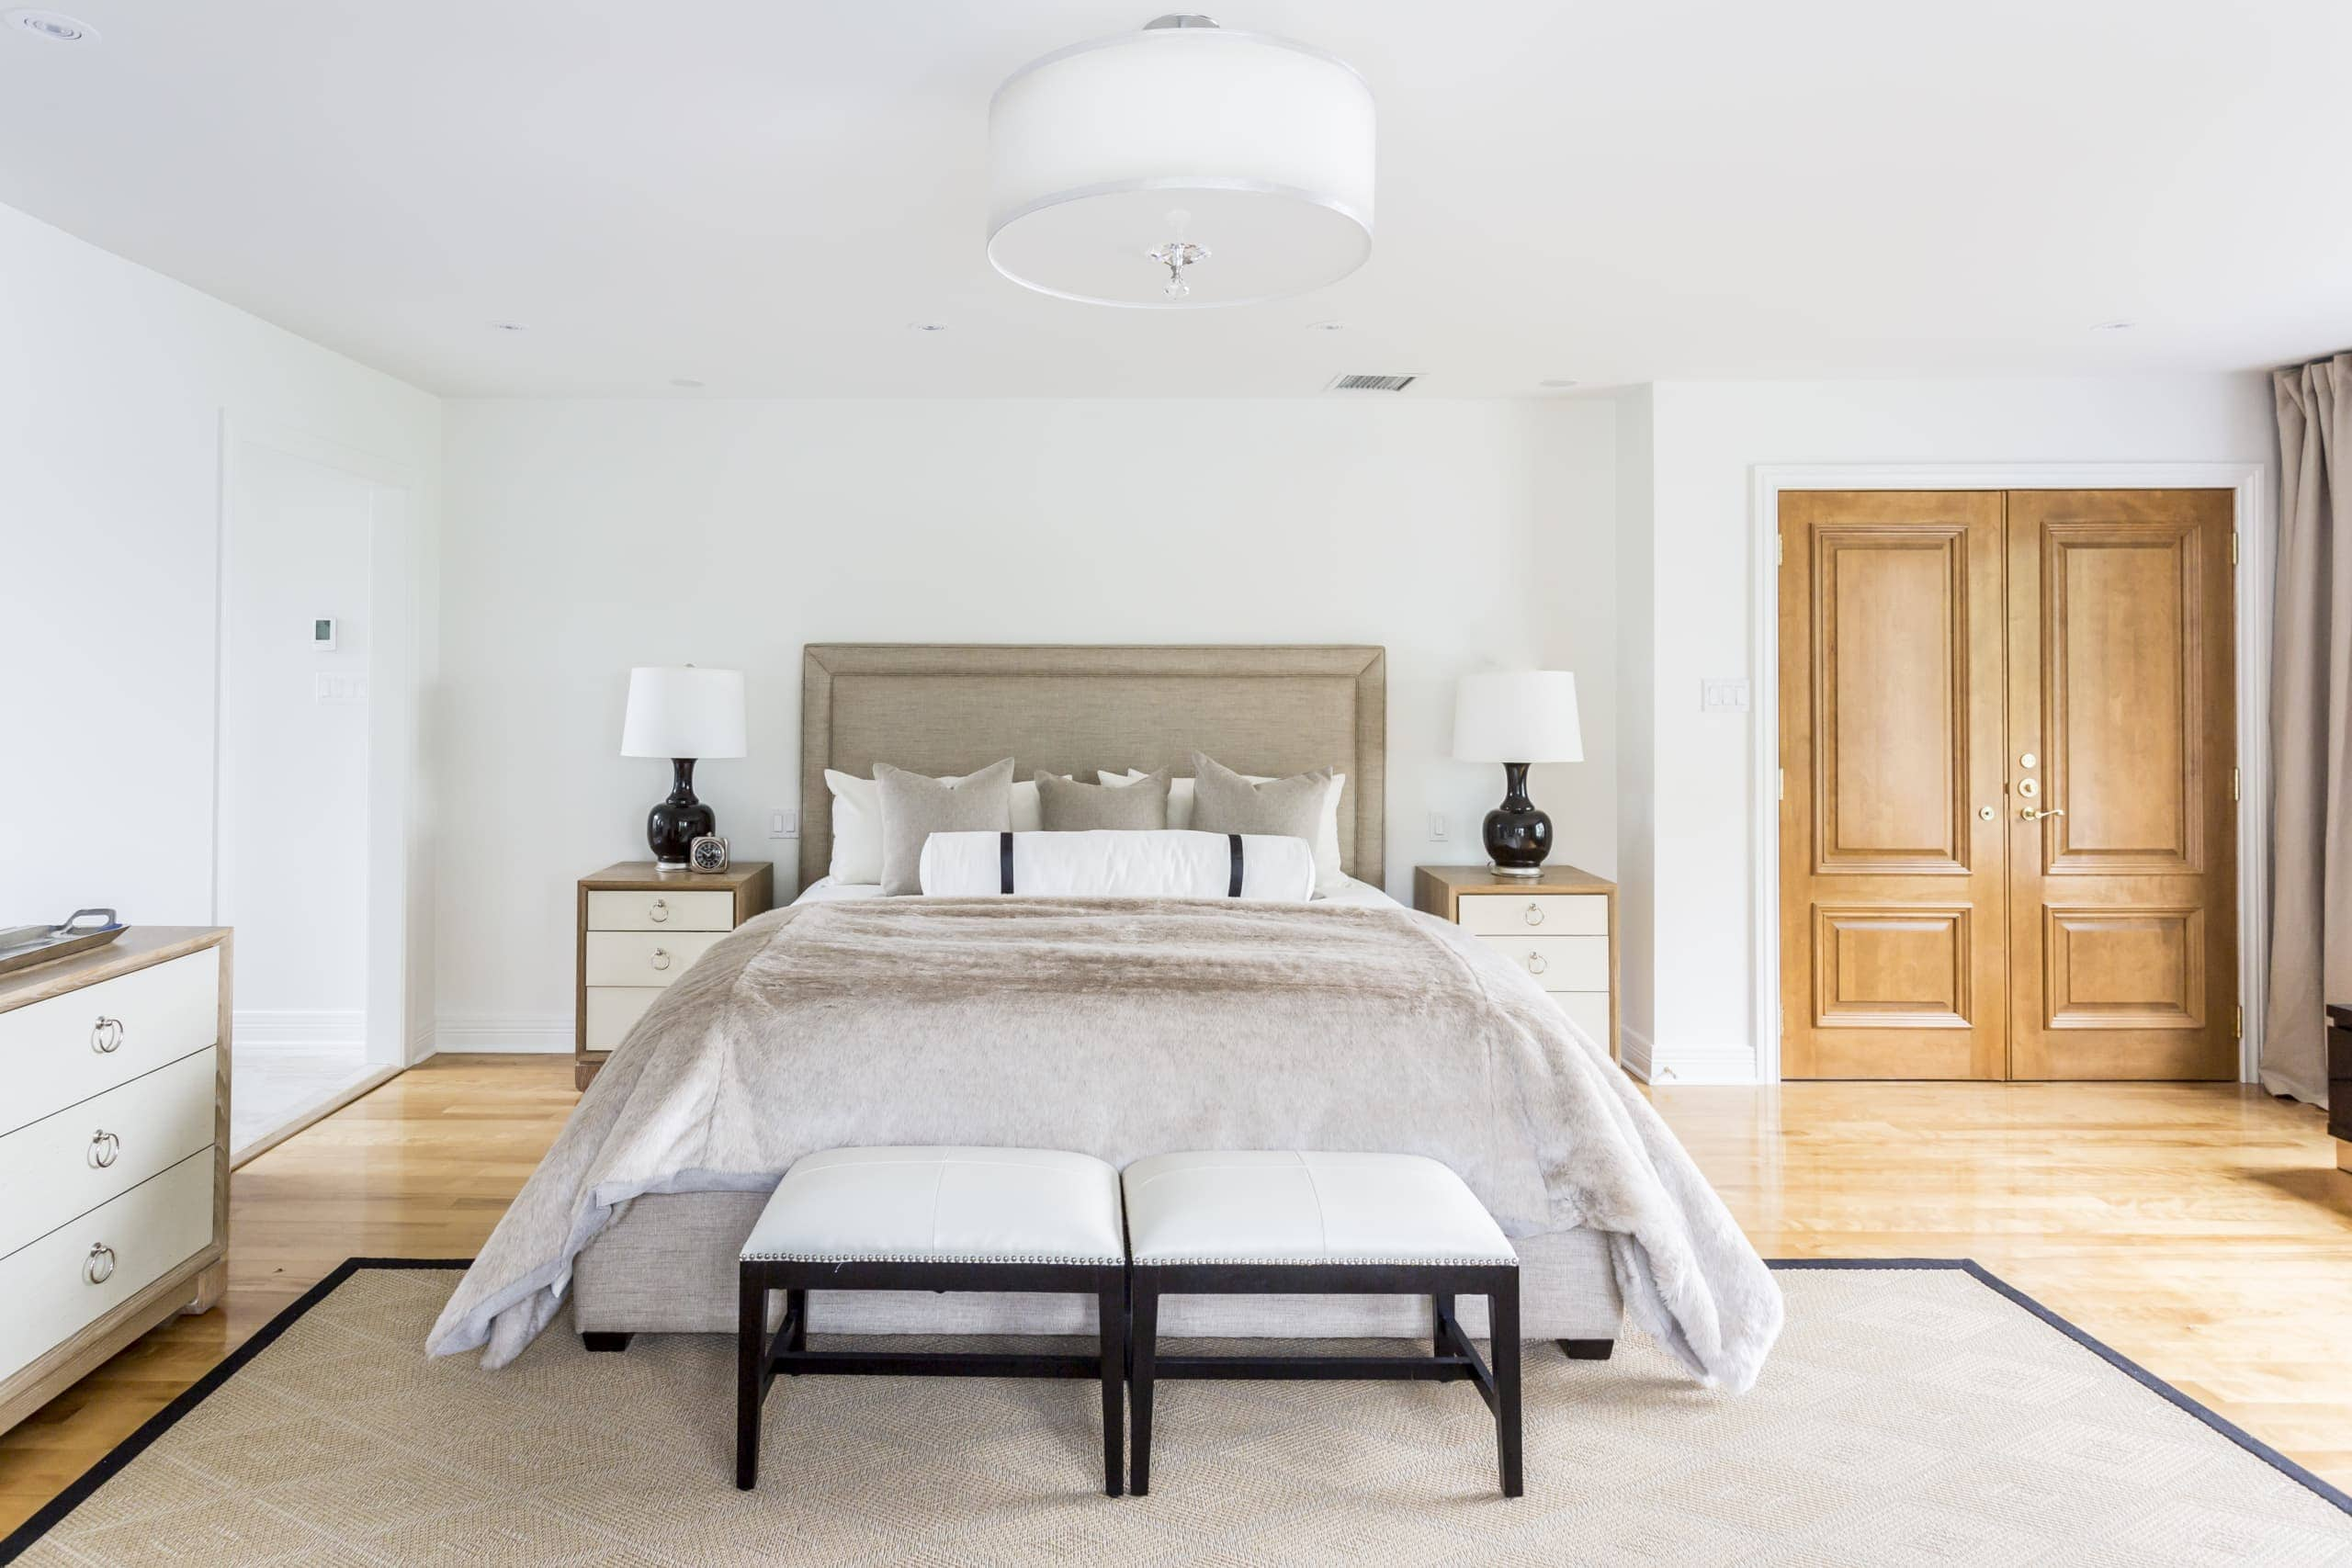 Large bed with the same bedside table and lamps on each side within the master bedroom